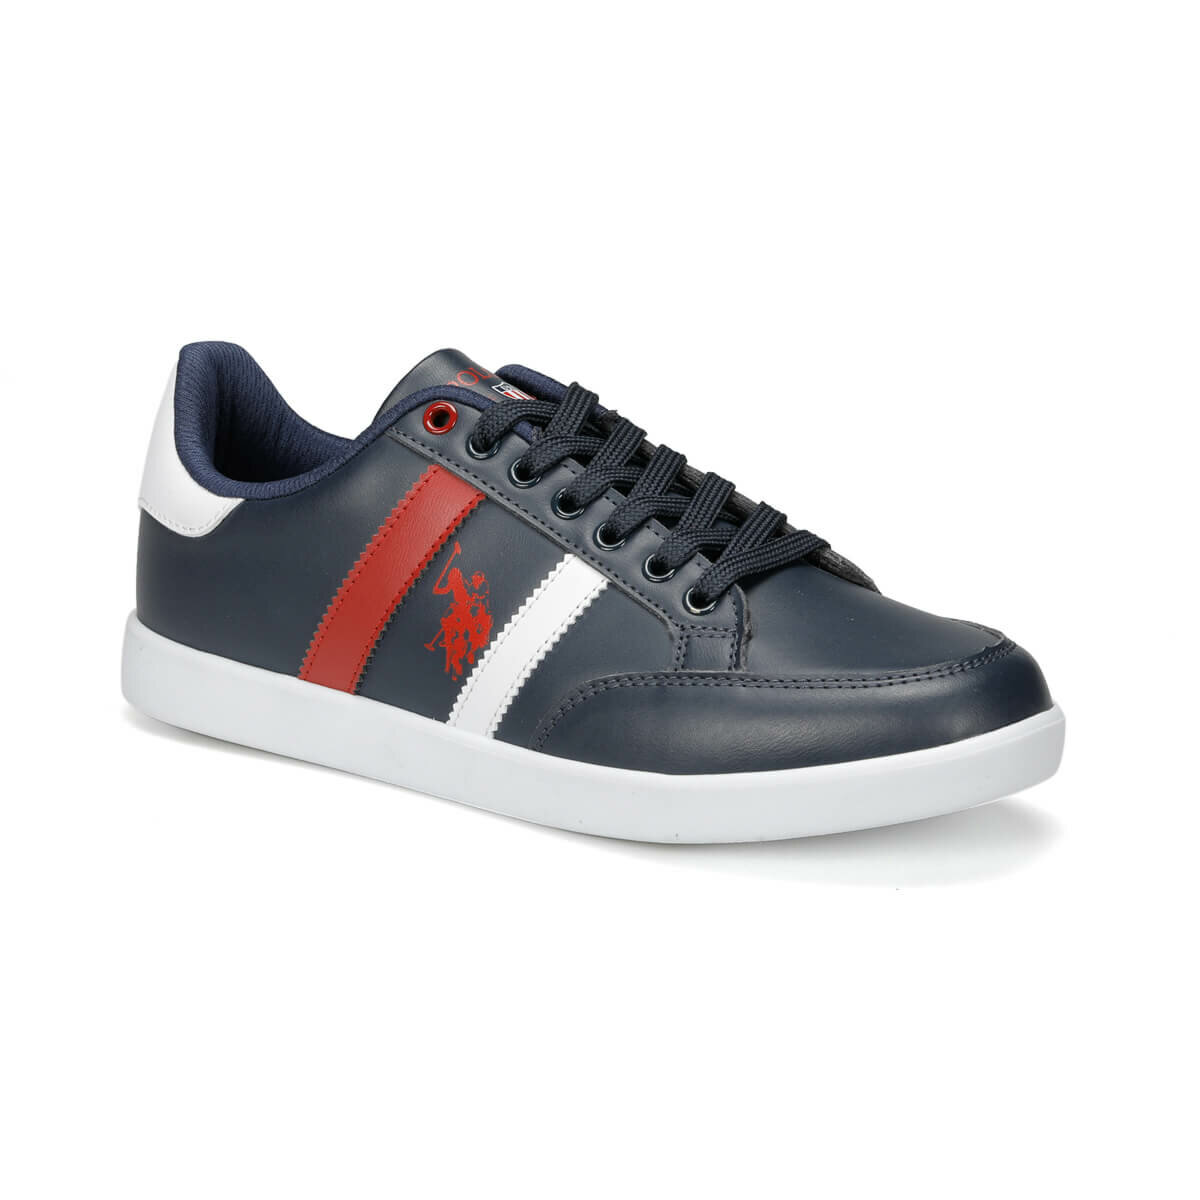 FLO SANTO WT 9PR Navy Blue Men 'S Sneaker Shoes U.S. POLO ASSN.